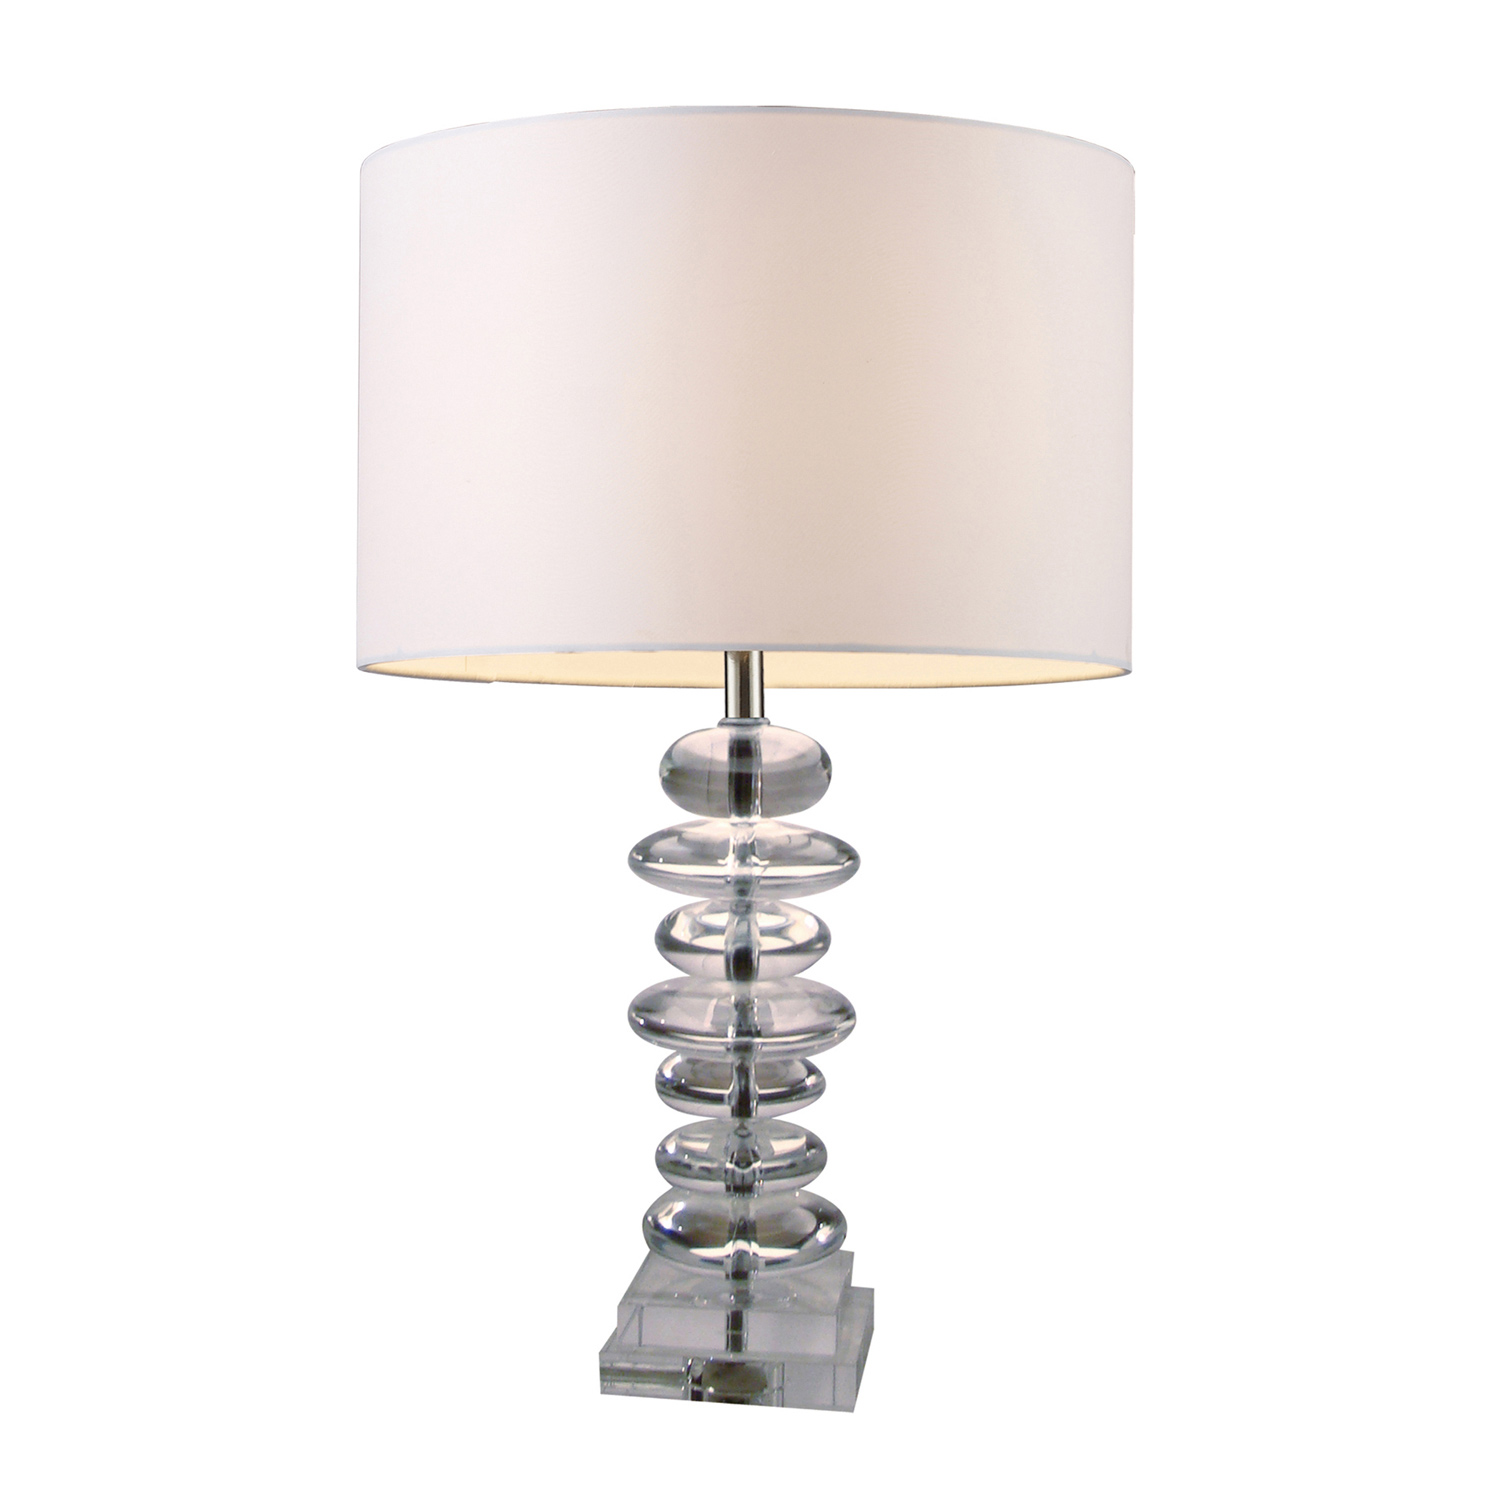 Elk Lighting D1512 Madison Table Lamp - Clear Crystal